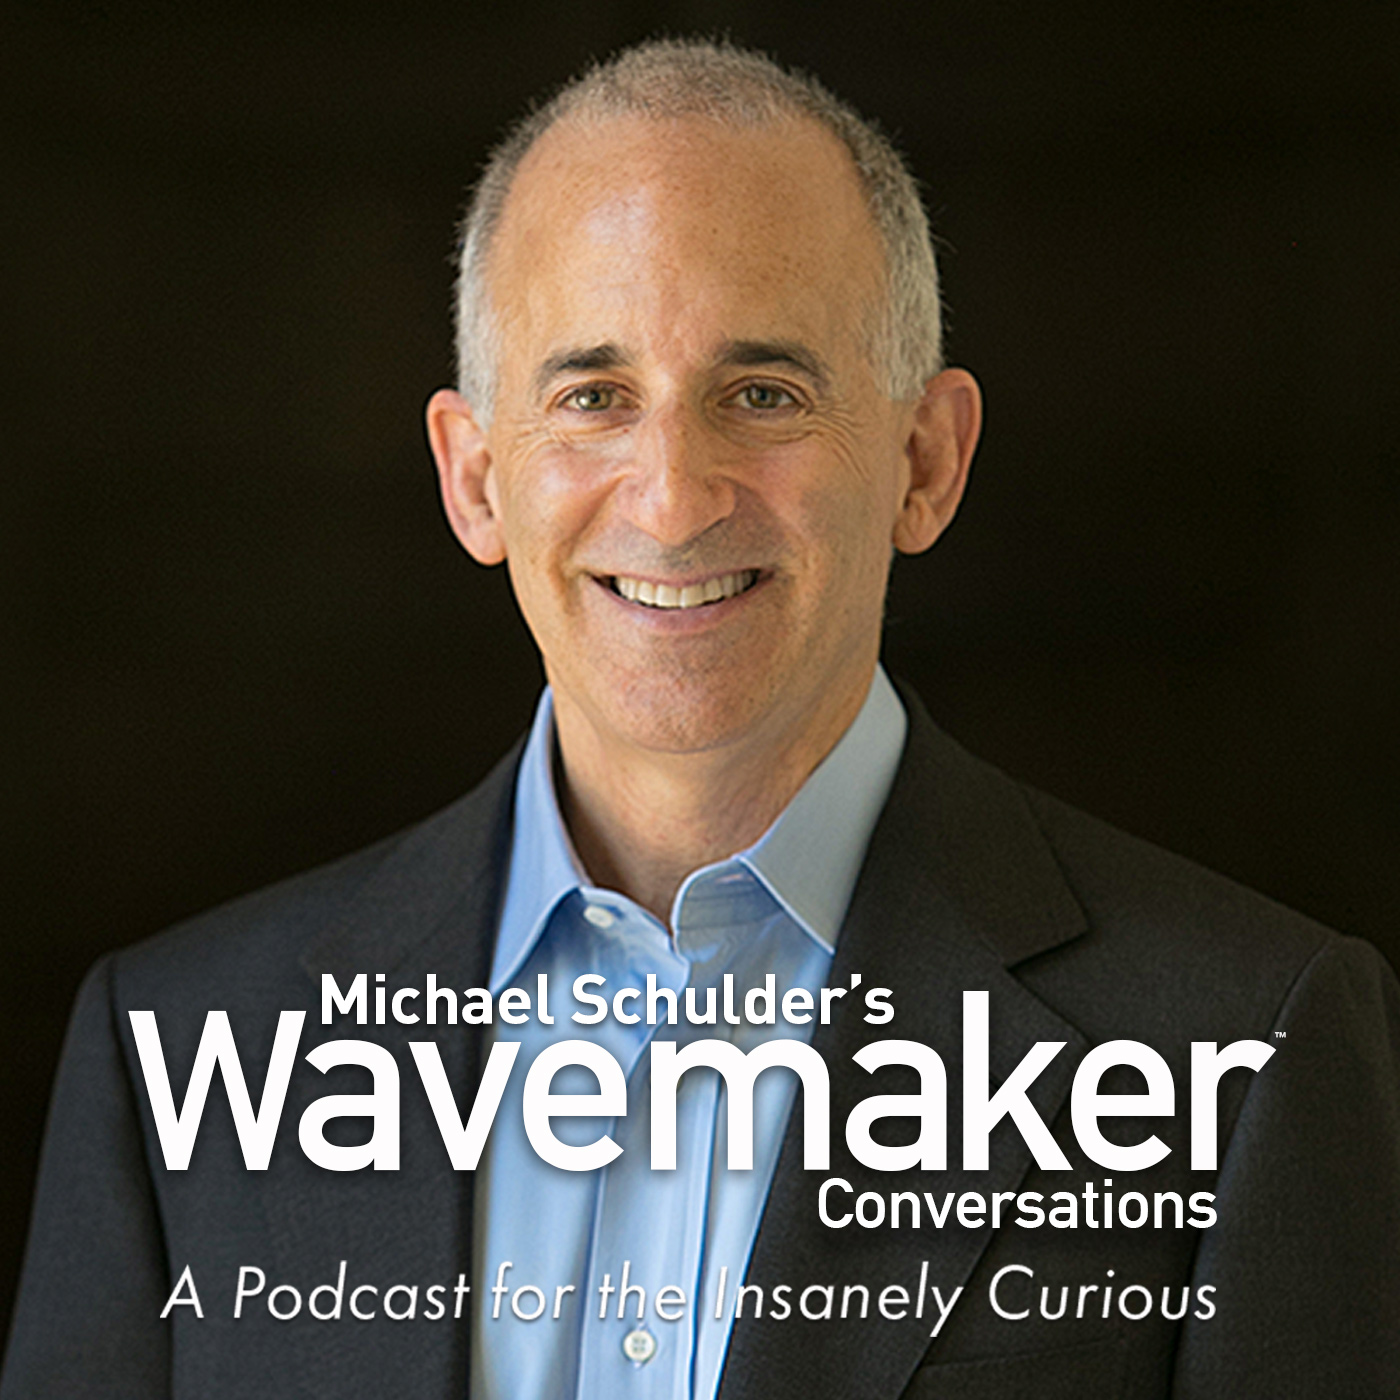 Wavemaker Conversations: A Podcast for the Insanely Curious